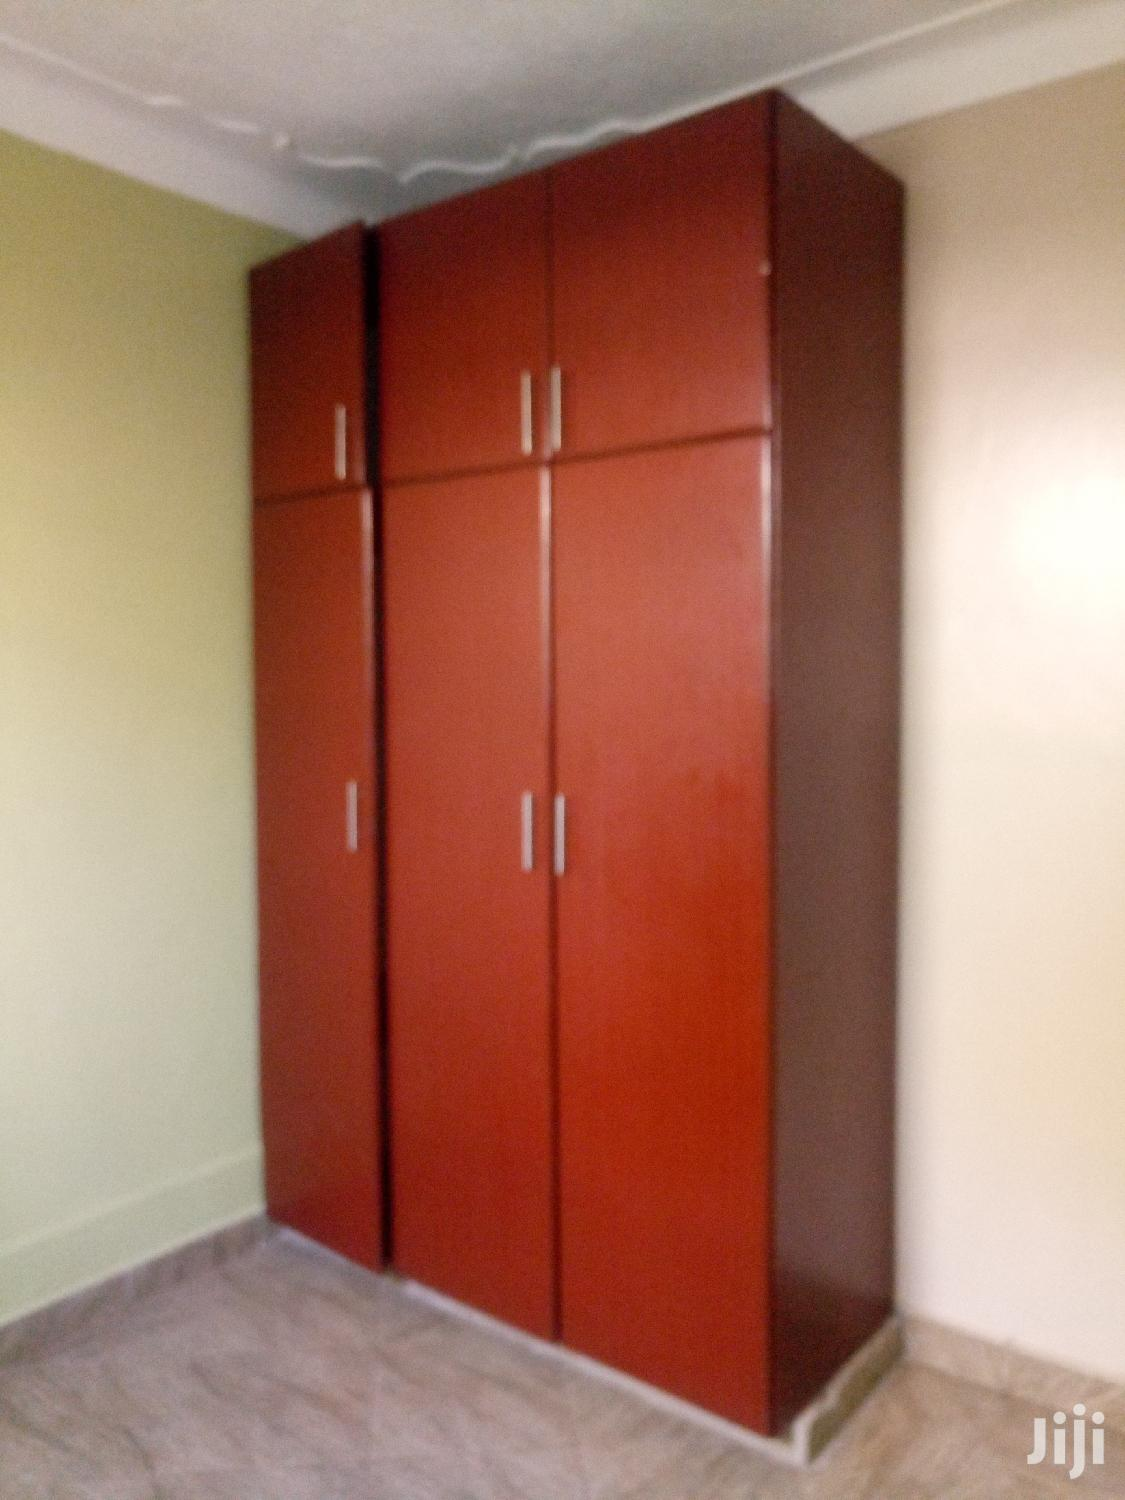 Kisaasi Executive Self Contained Double Room House For Rent | Houses & Apartments For Rent for sale in Kampala, Central Region, Uganda